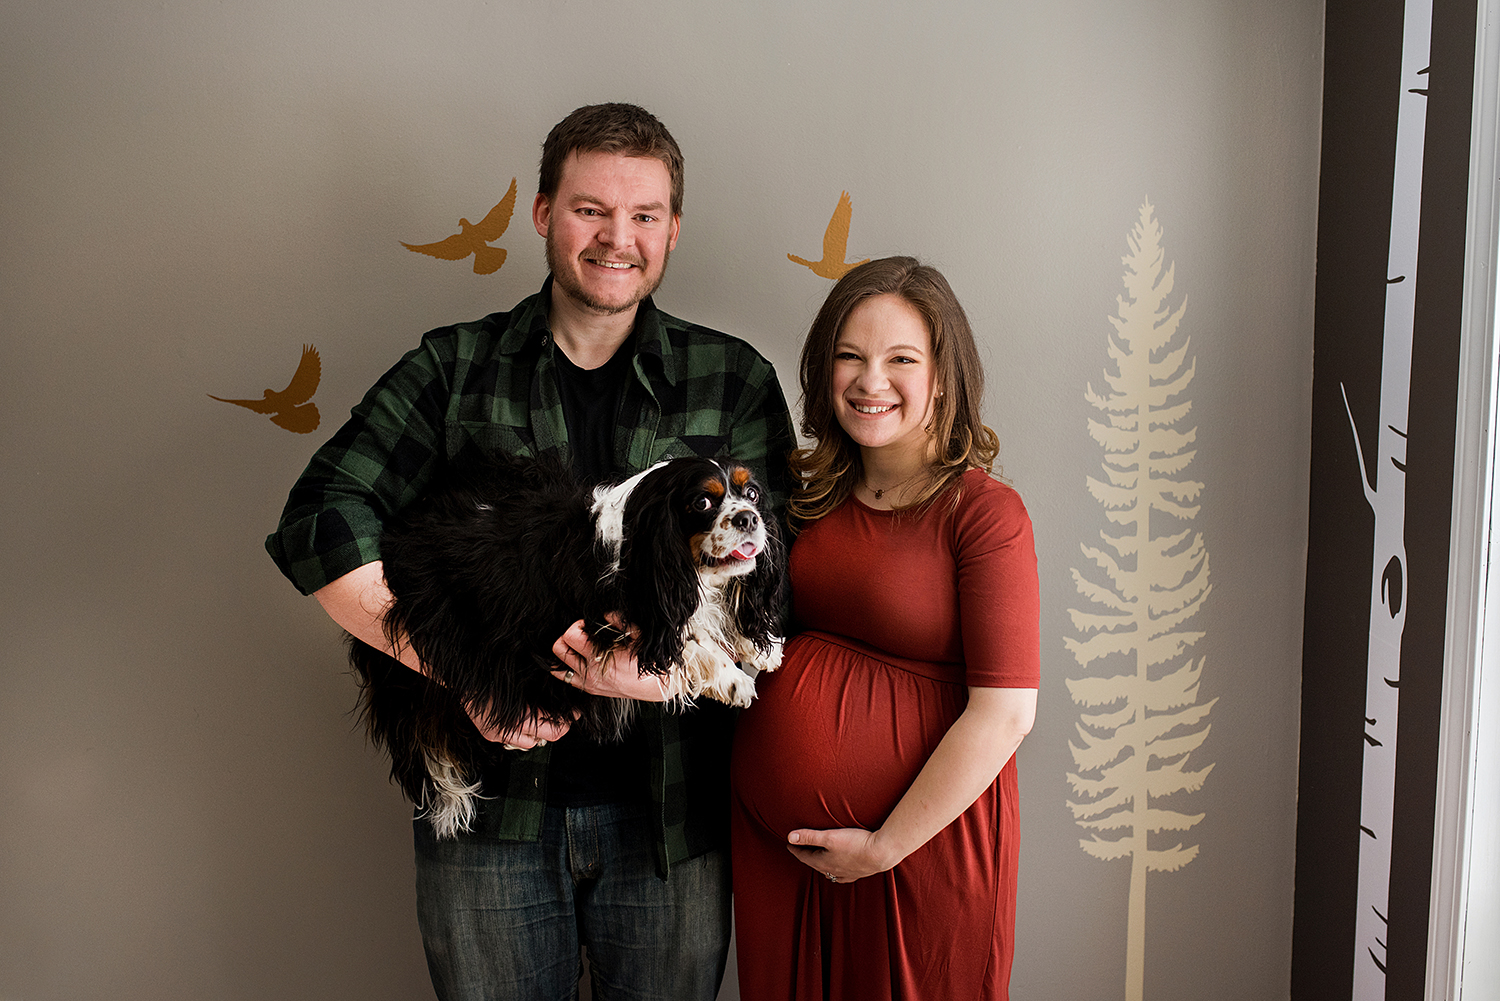 Maternity photographer Connecticut. Maternity portraits with family dog